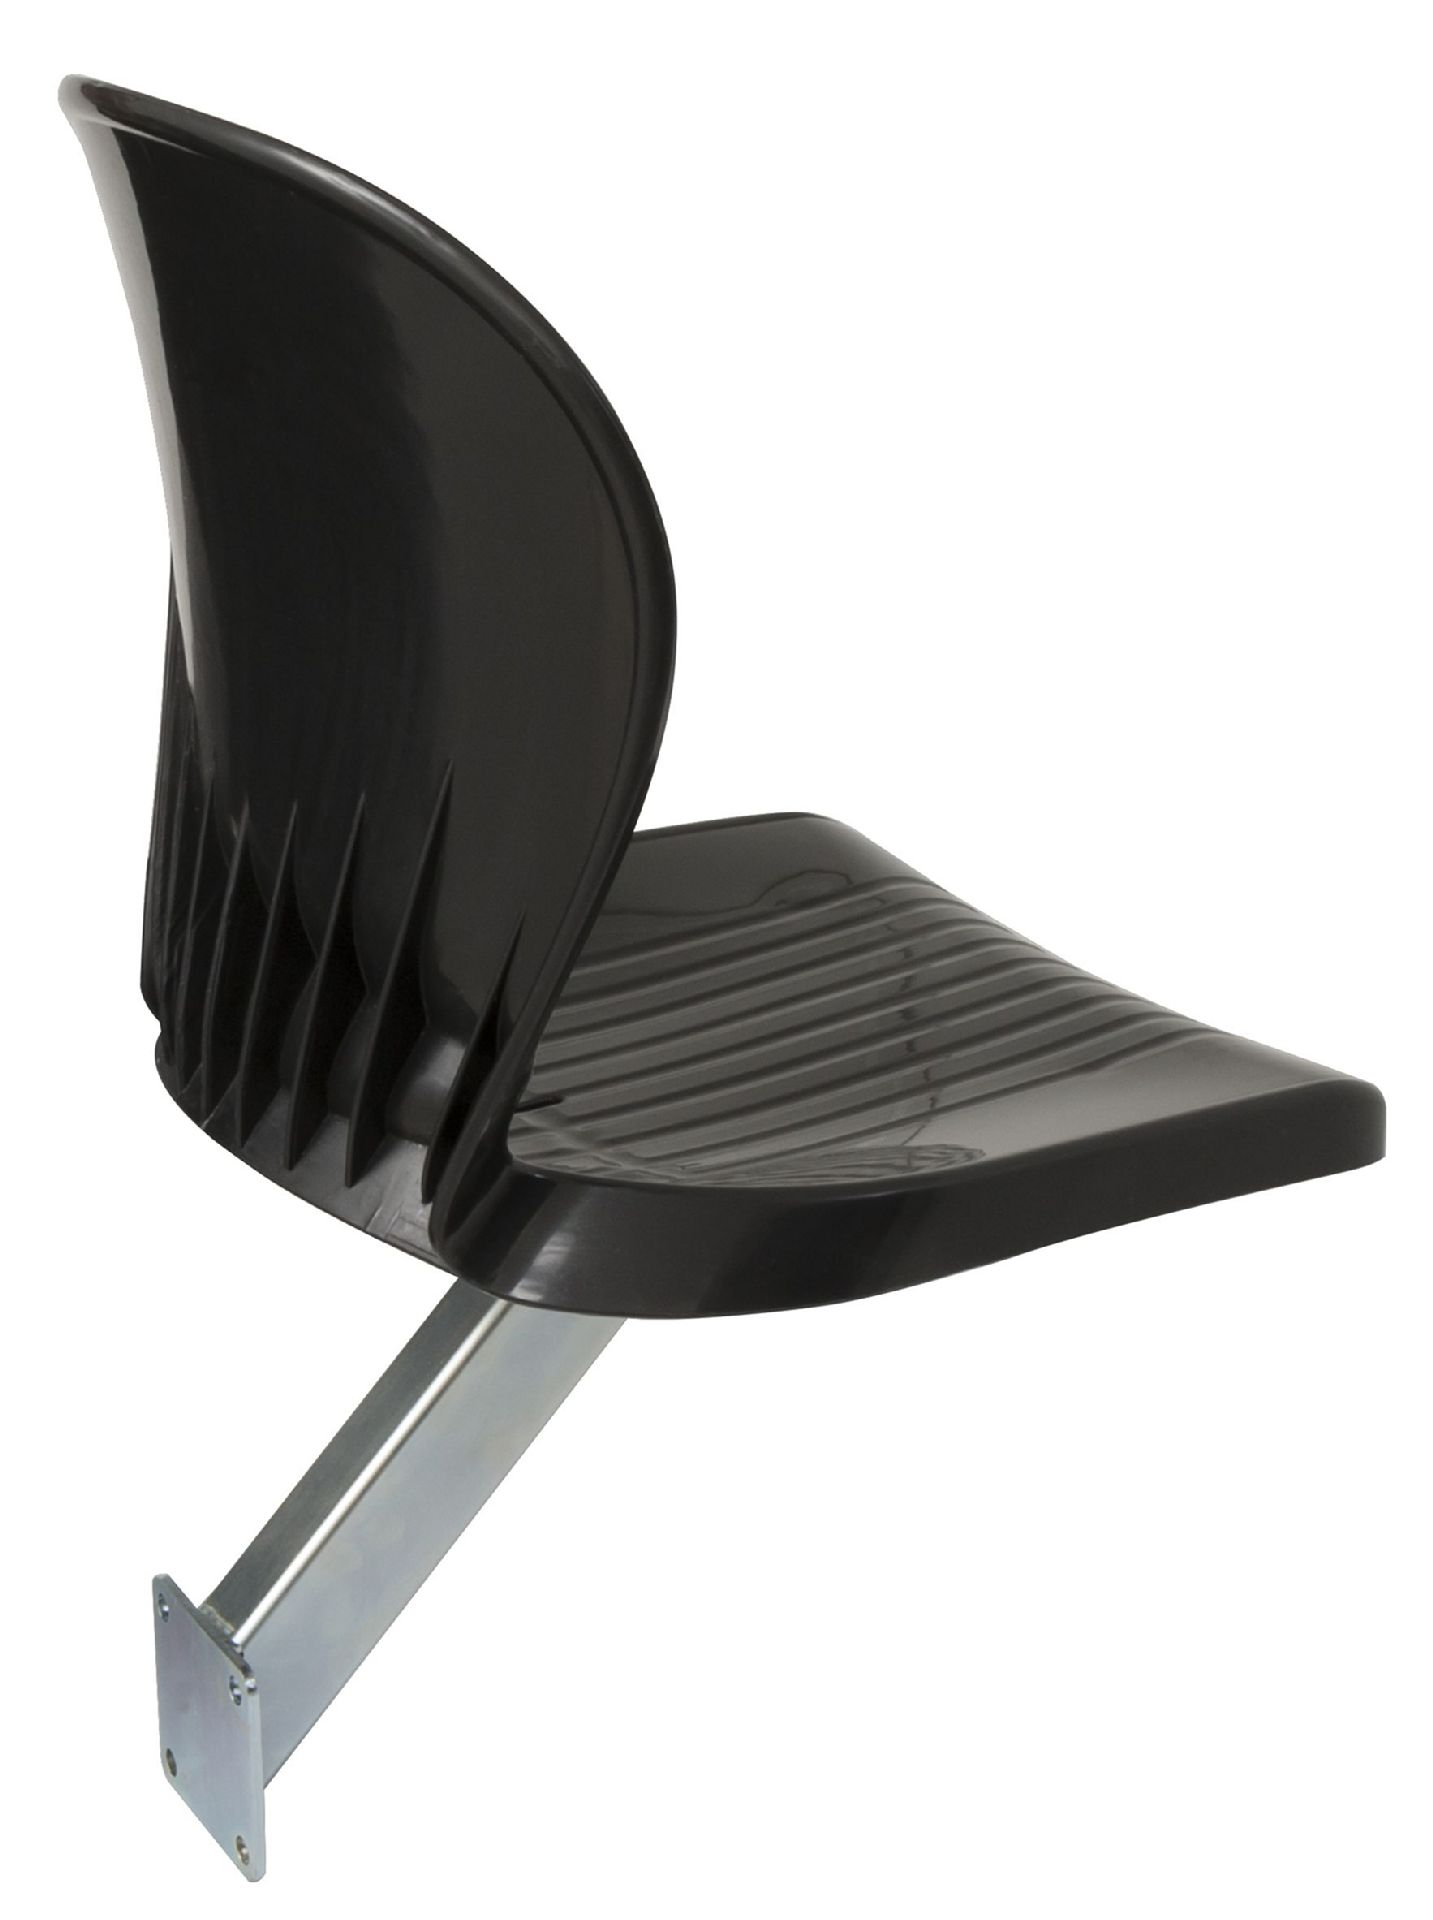 mine_backrest_monoblock_copolymer_pp_stadium_chair_seatorium_02